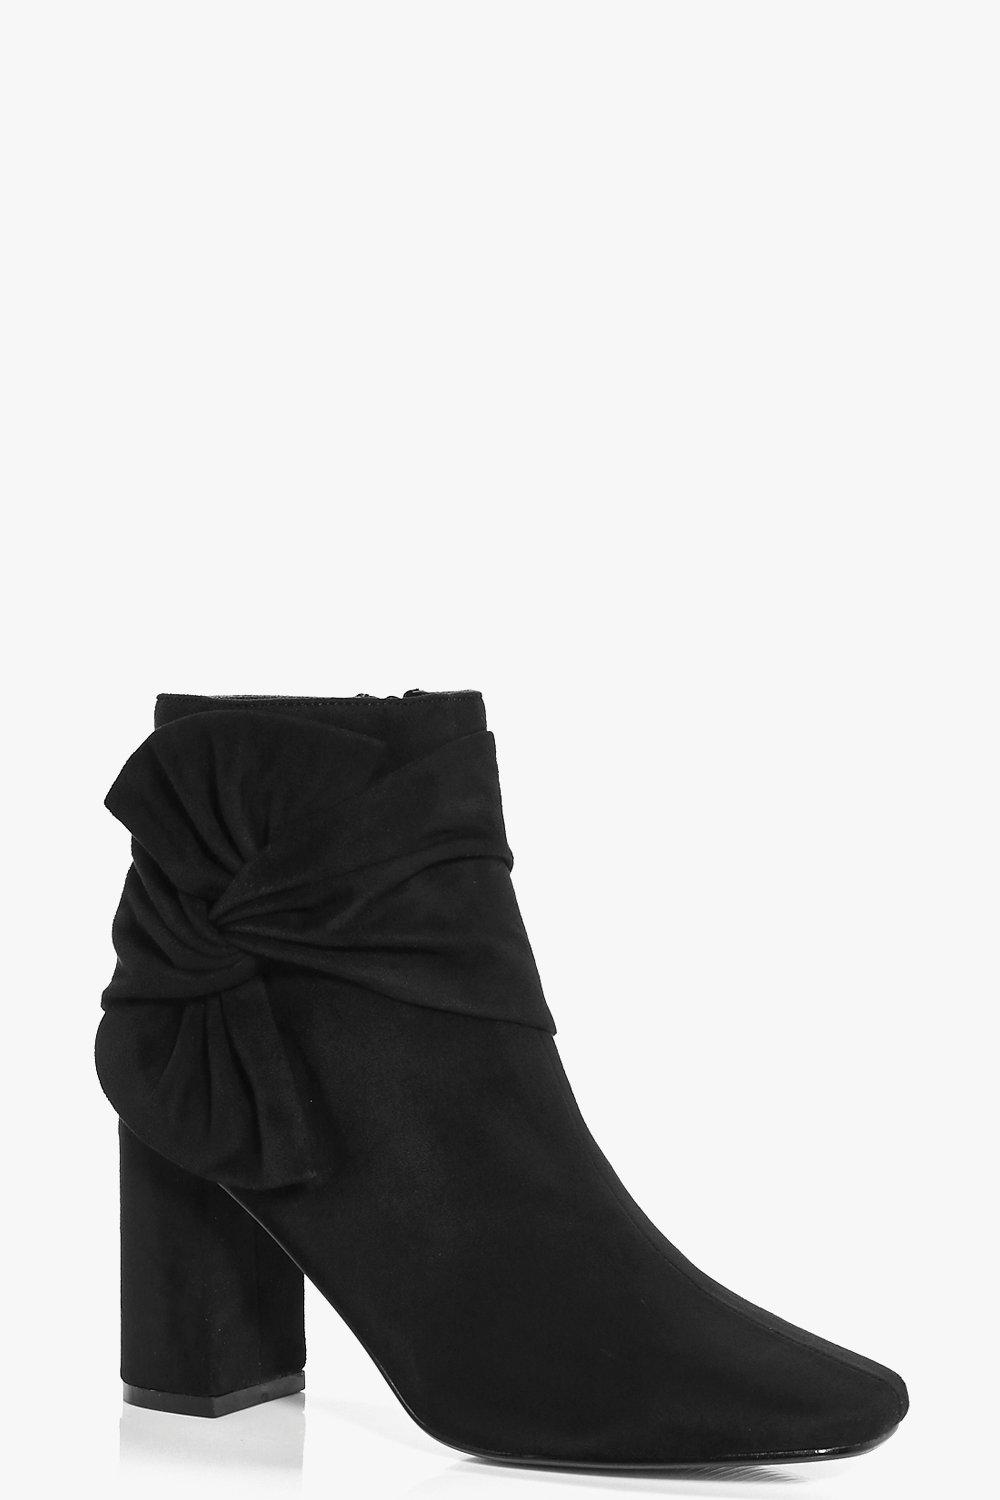 Scarlet Wrap Side Block Heel Boot